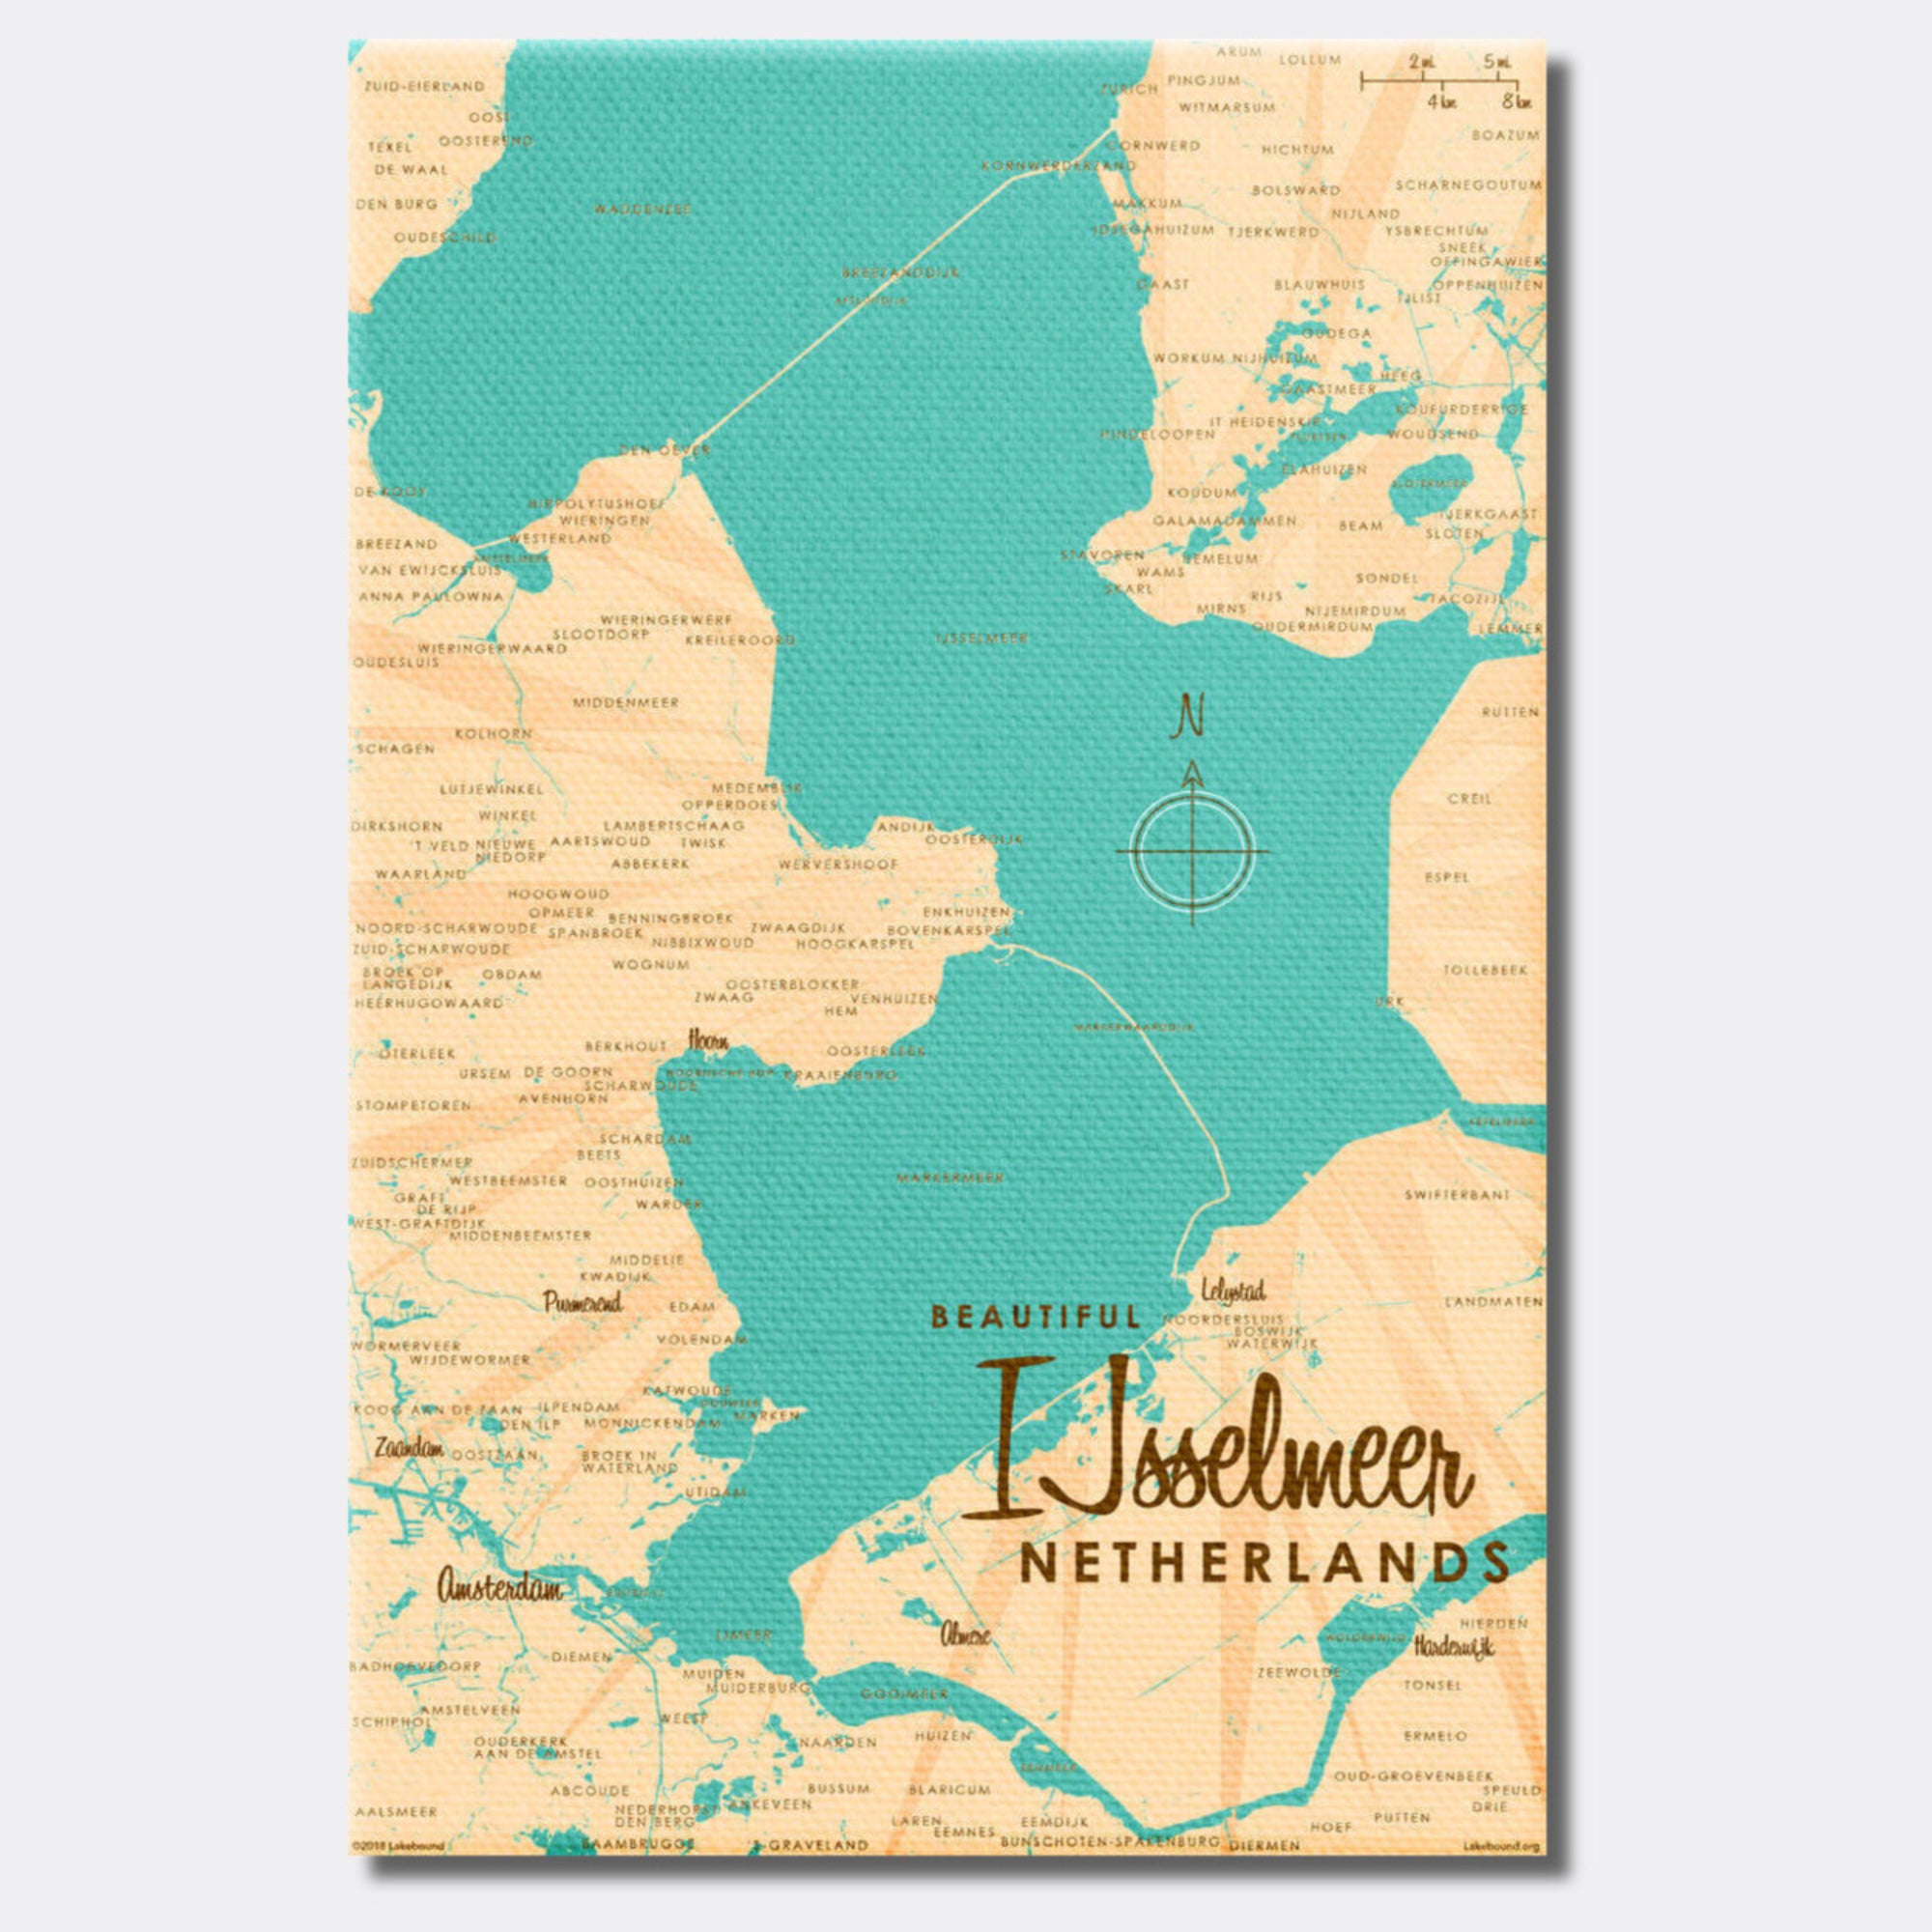 IJsselmeer Netherlands, Canvas Print